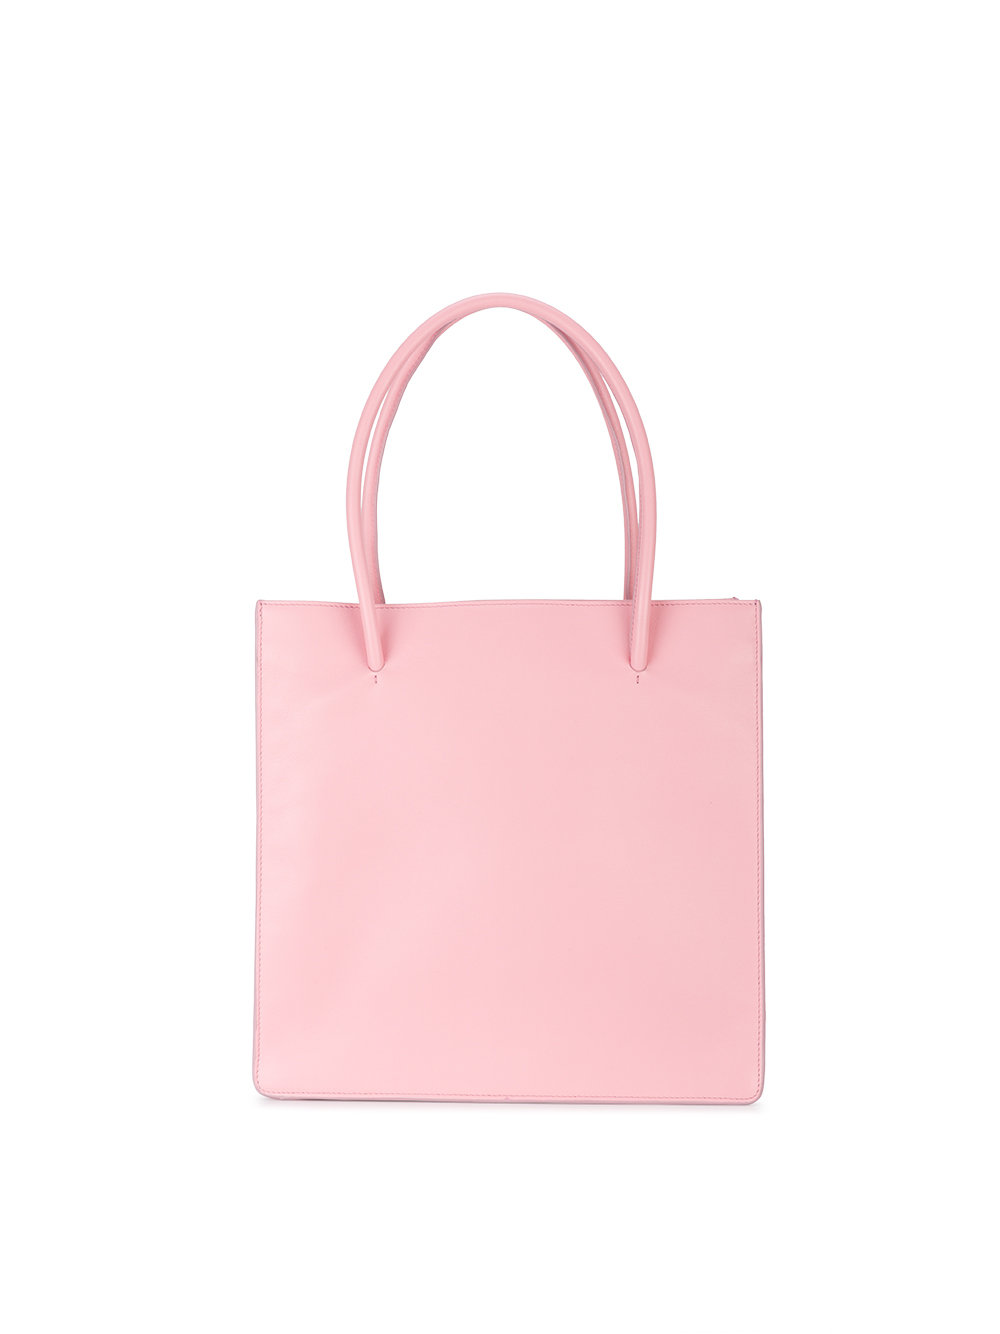 - ANAIS PINK TOTE $639  *photo via Farfetch